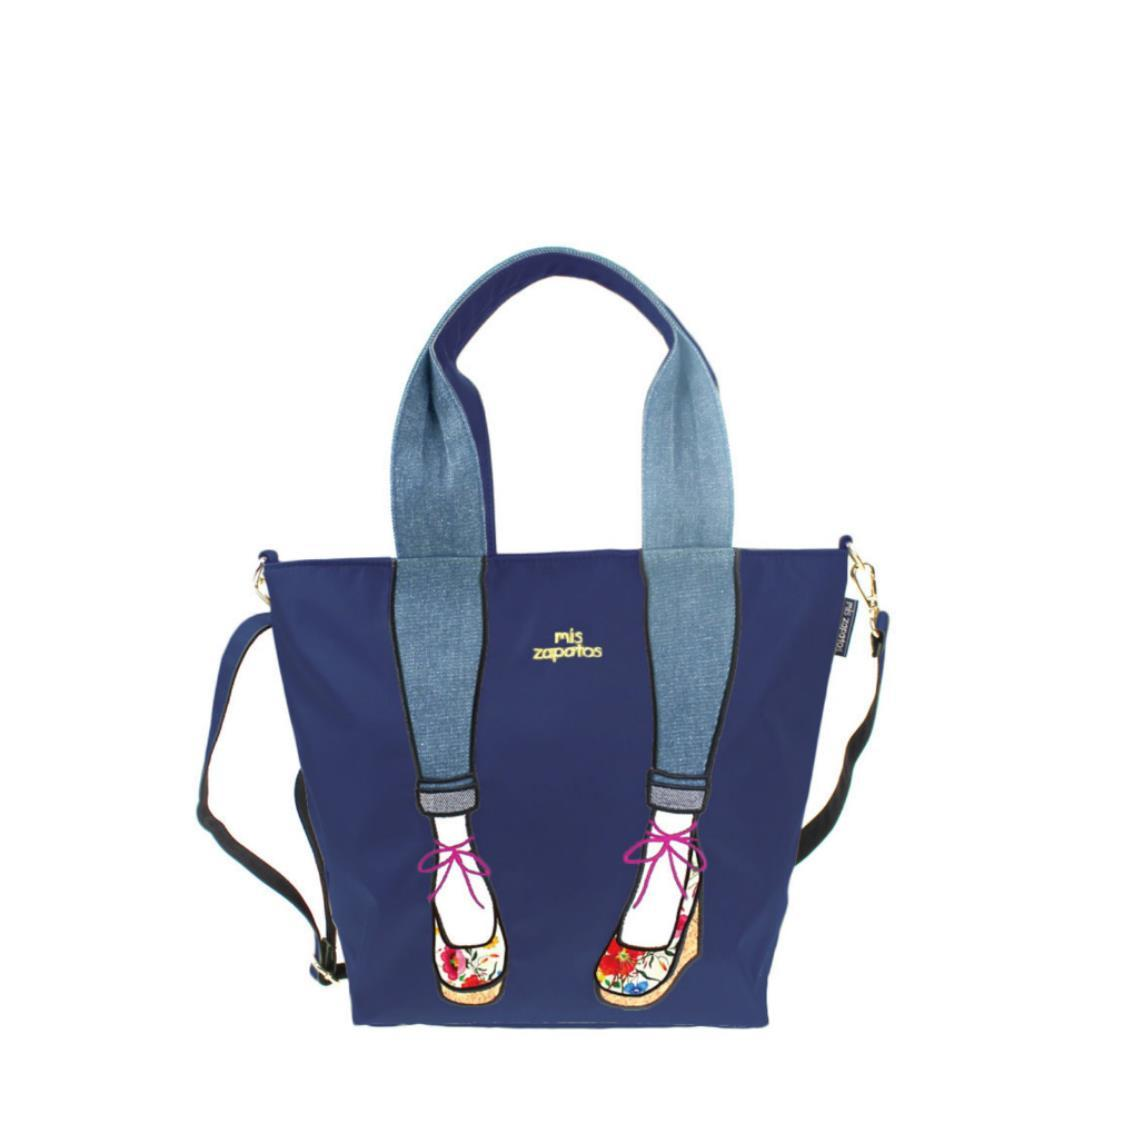 2-Way Use Jeans with Wedges Totebag Navy